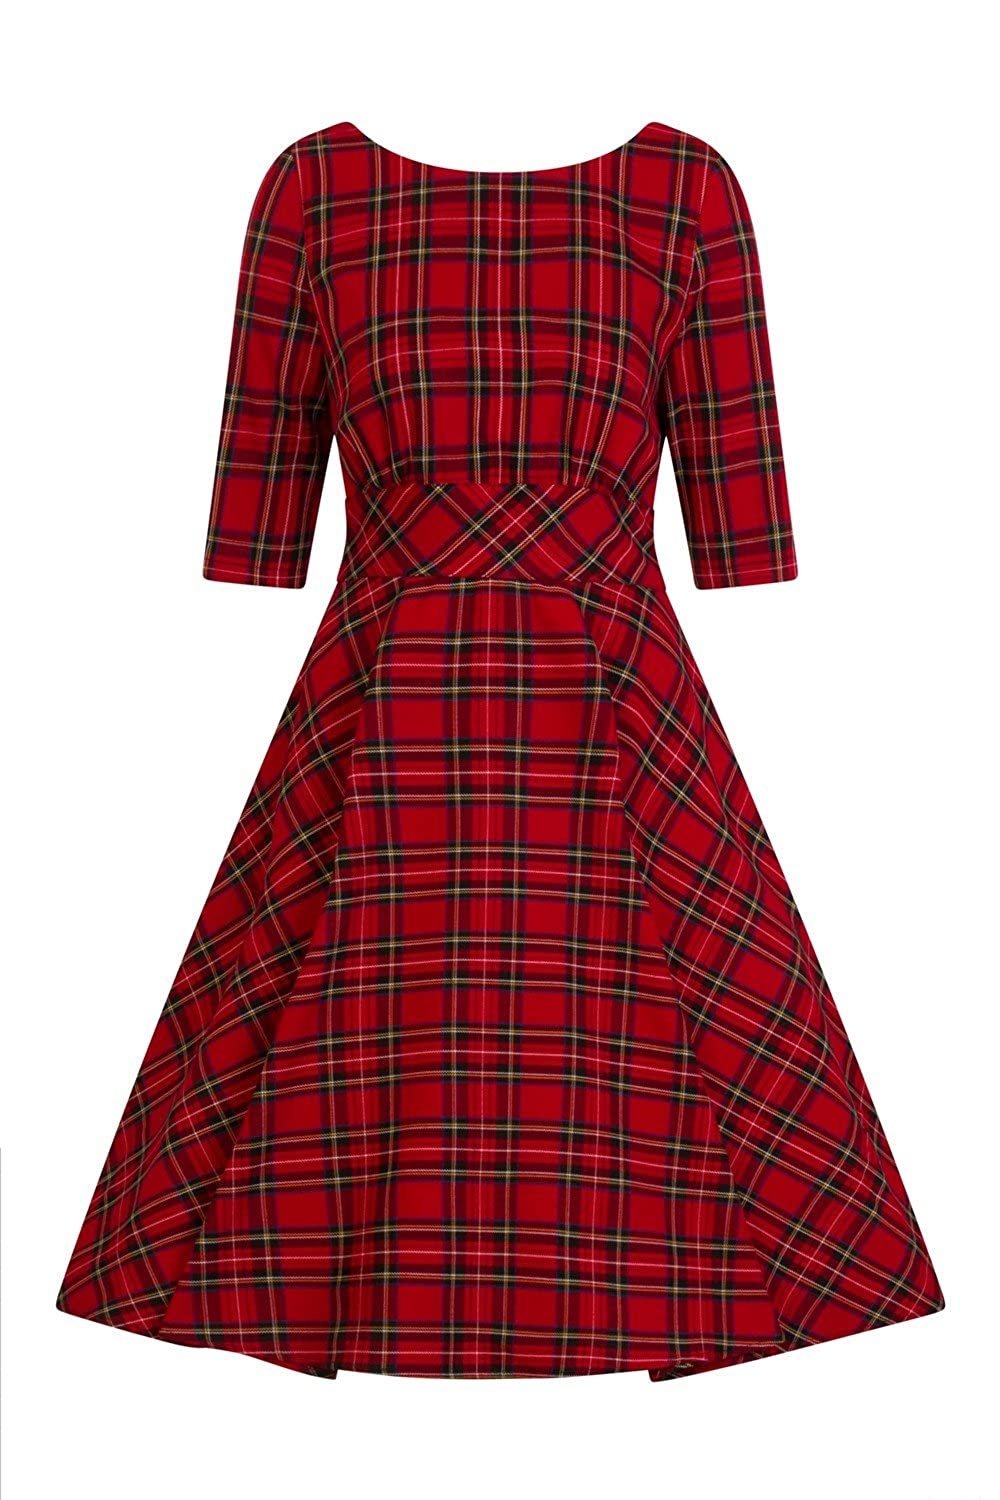 1940s Day Dress Styles, House Dresses Hell Bunny Irvine Tartan 1950s Vintage Retro Dress XS-4XL $72.99 AT vintagedancer.com